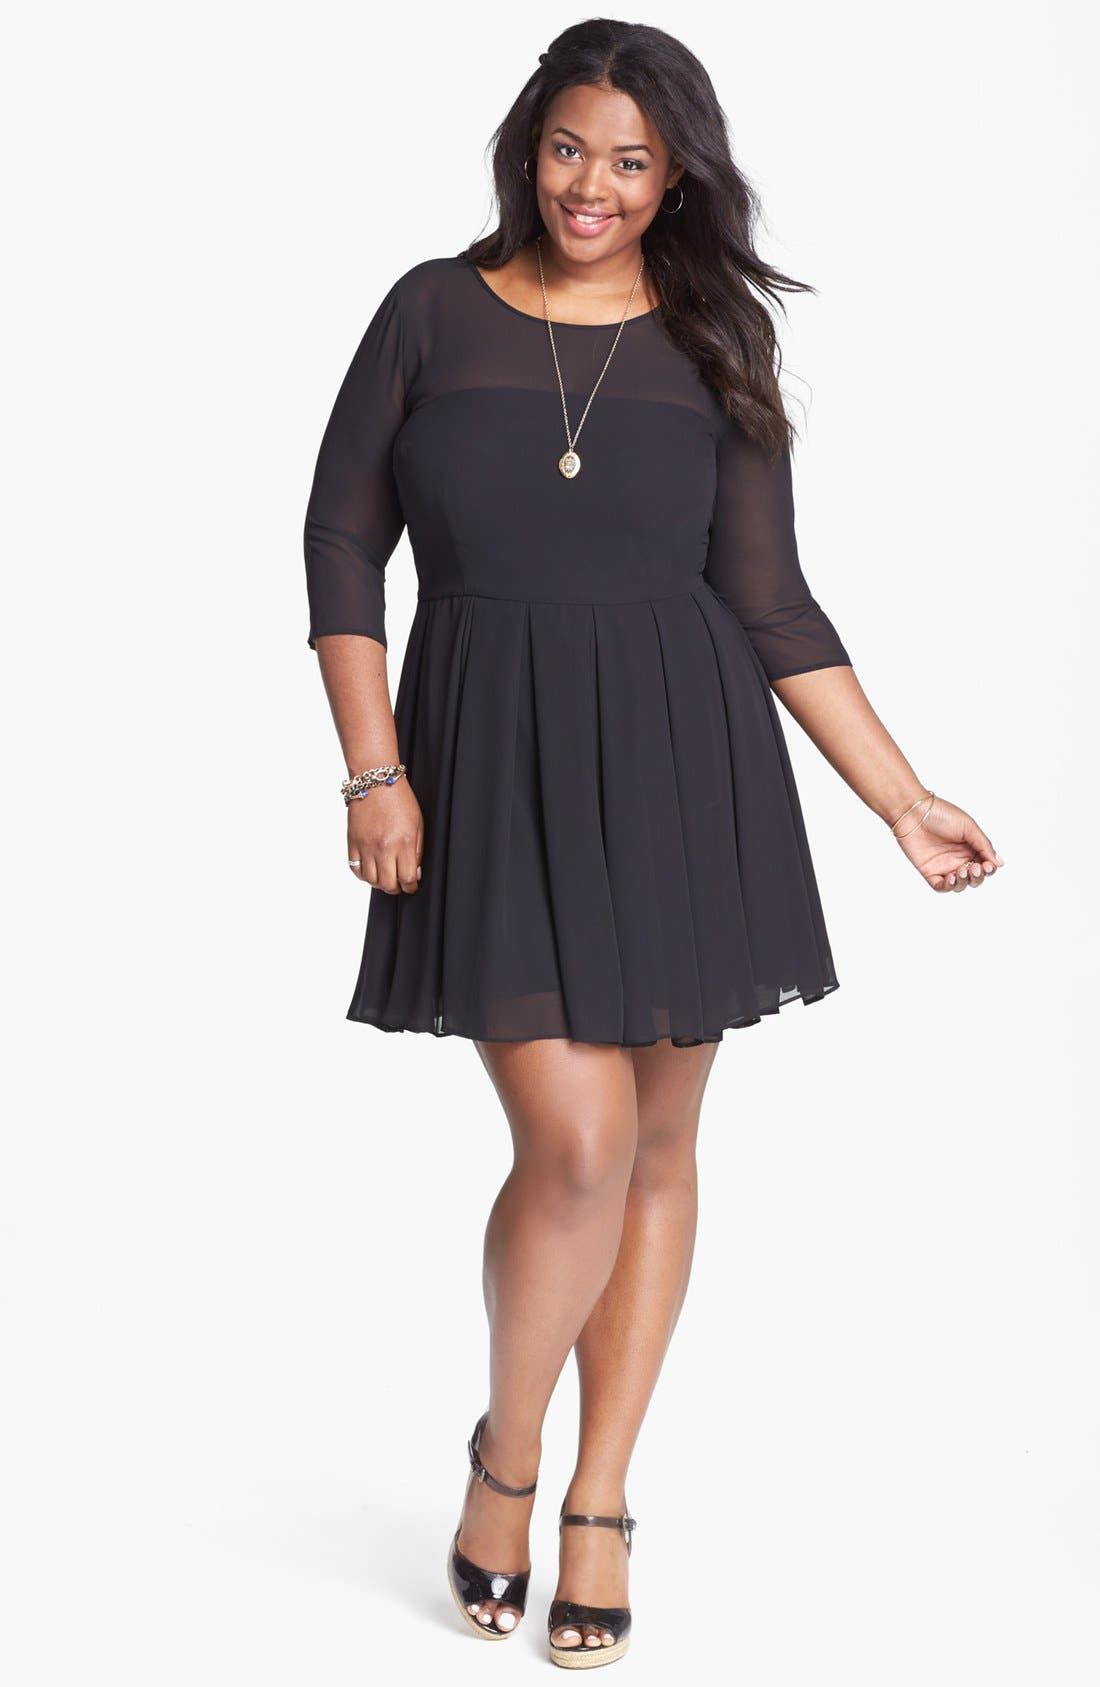 Alternate Image 1 Selected - BB Dakota 'Anita' Georgette Fit & Flare Dress (Plus Size)